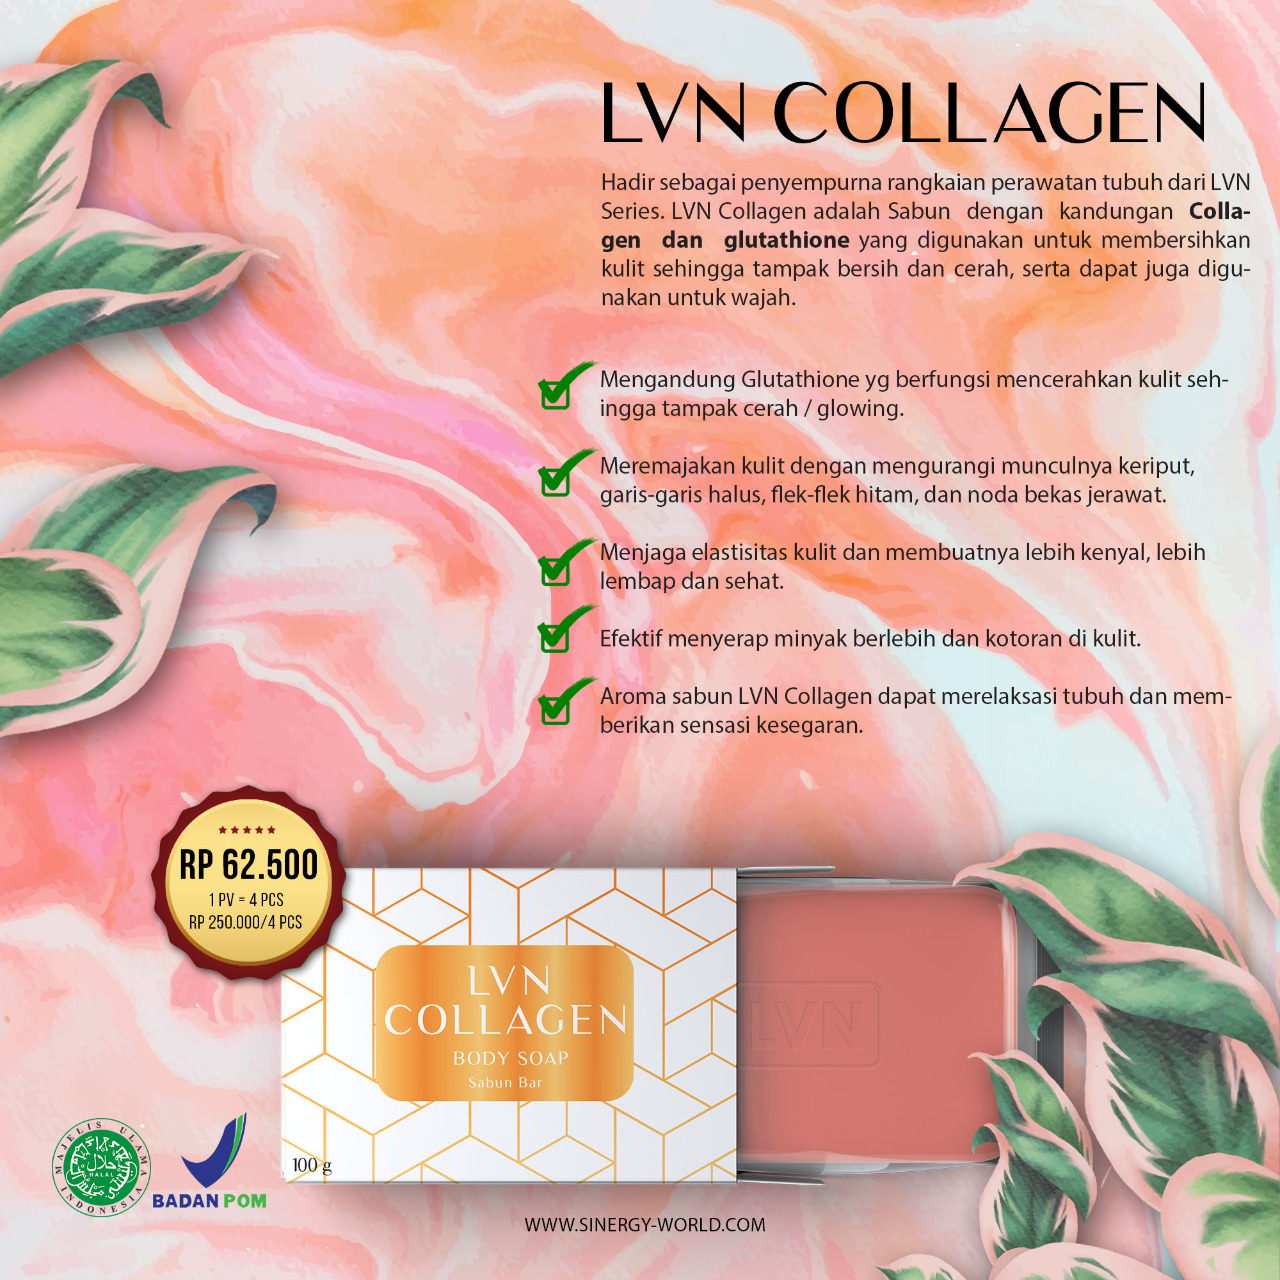 LVN COLLAGEN